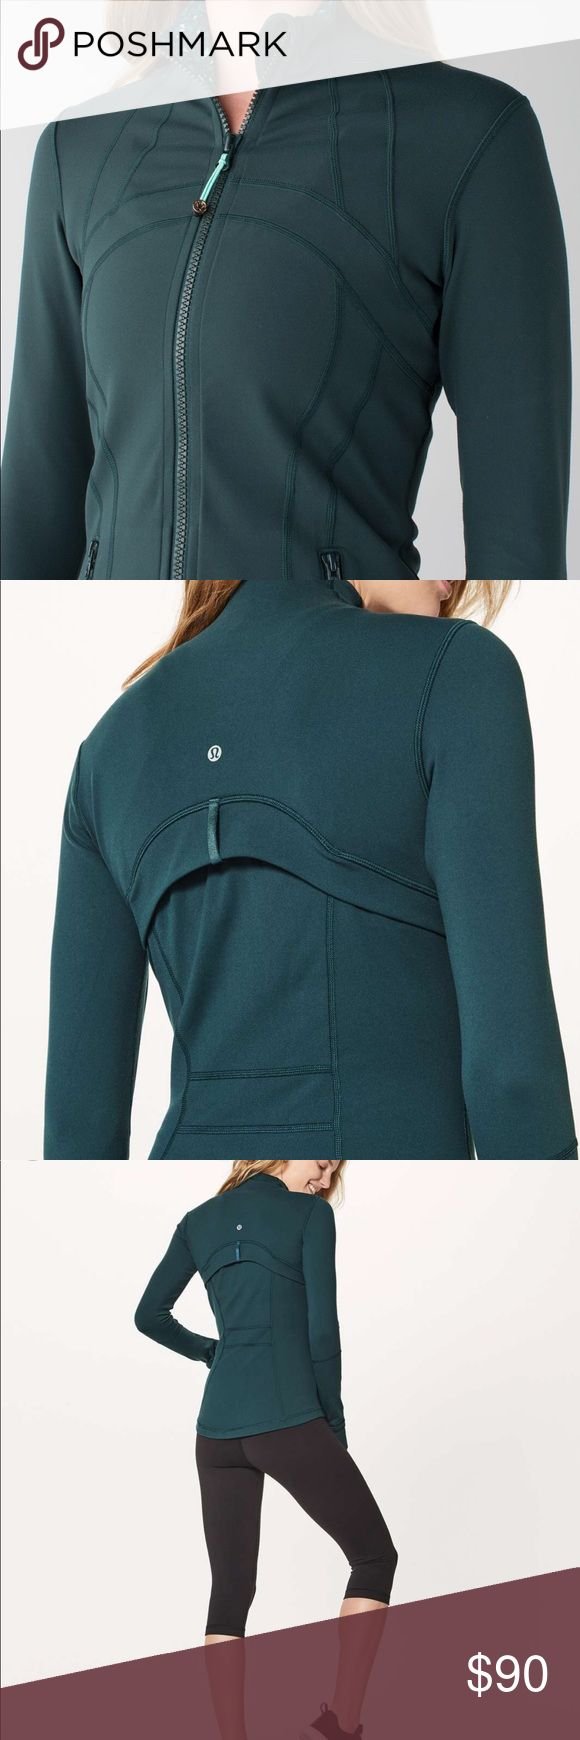 """Very rare Lululemon """"submarine"""" Define jacket 💚 Rare Lululemon """"submarine"""" deep emerald green define jacket size 10! Perfect condition minus tag inside as seen in photo (just wrinkled) just doesn't fit, my loss is your gain :) lululemon athletica Jackets & Coats"""